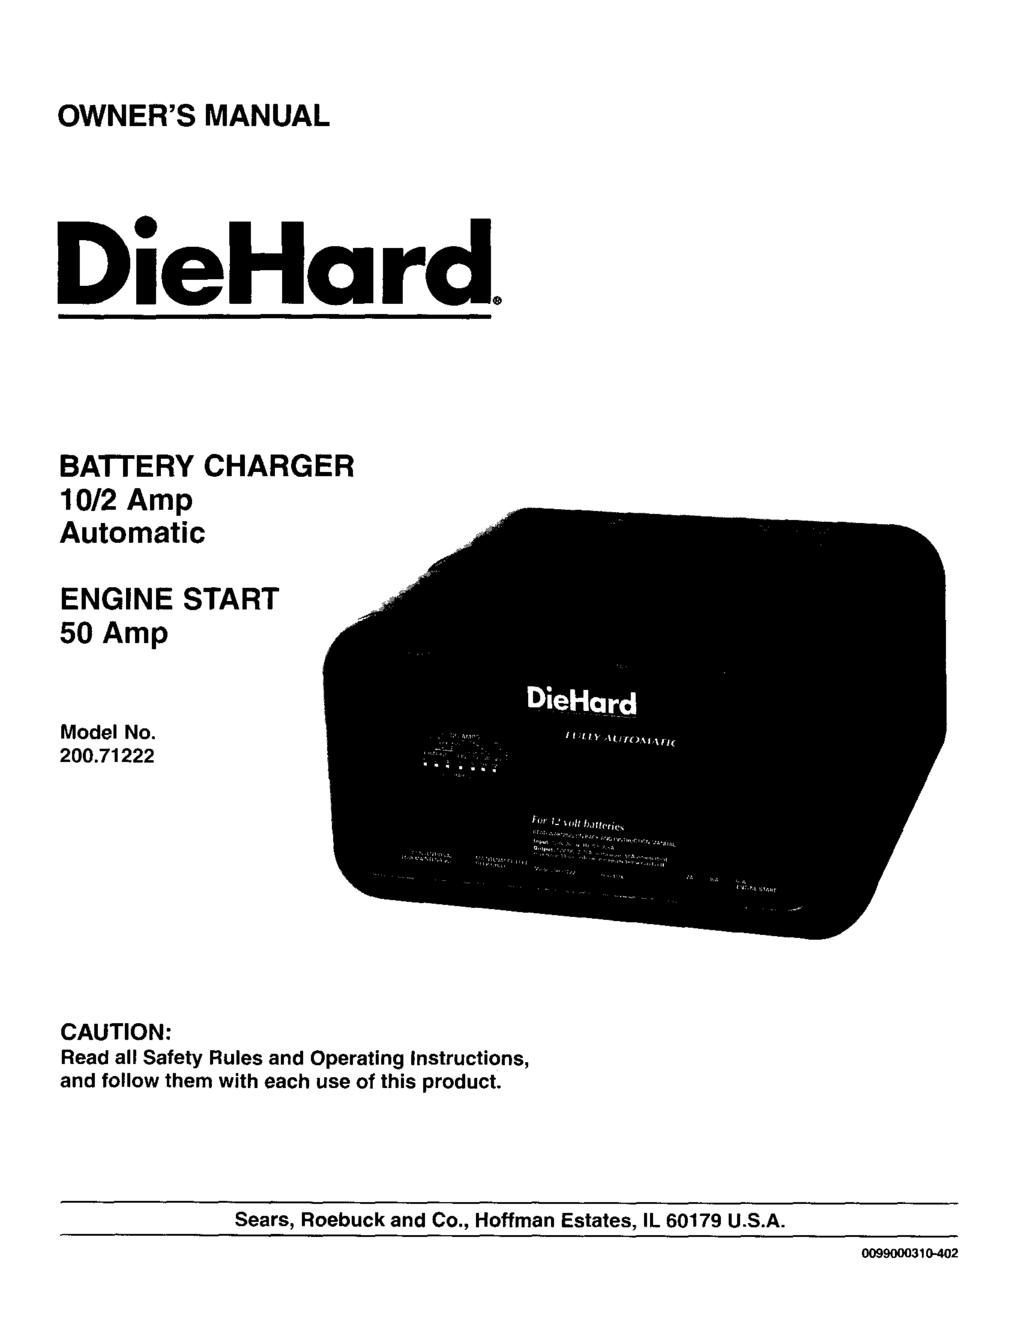 OWNER'S MANUAL DieHard, BATTERY CHARGER 10/2 Amp Automatic ENGINE START 50 Amp Model No. 200.